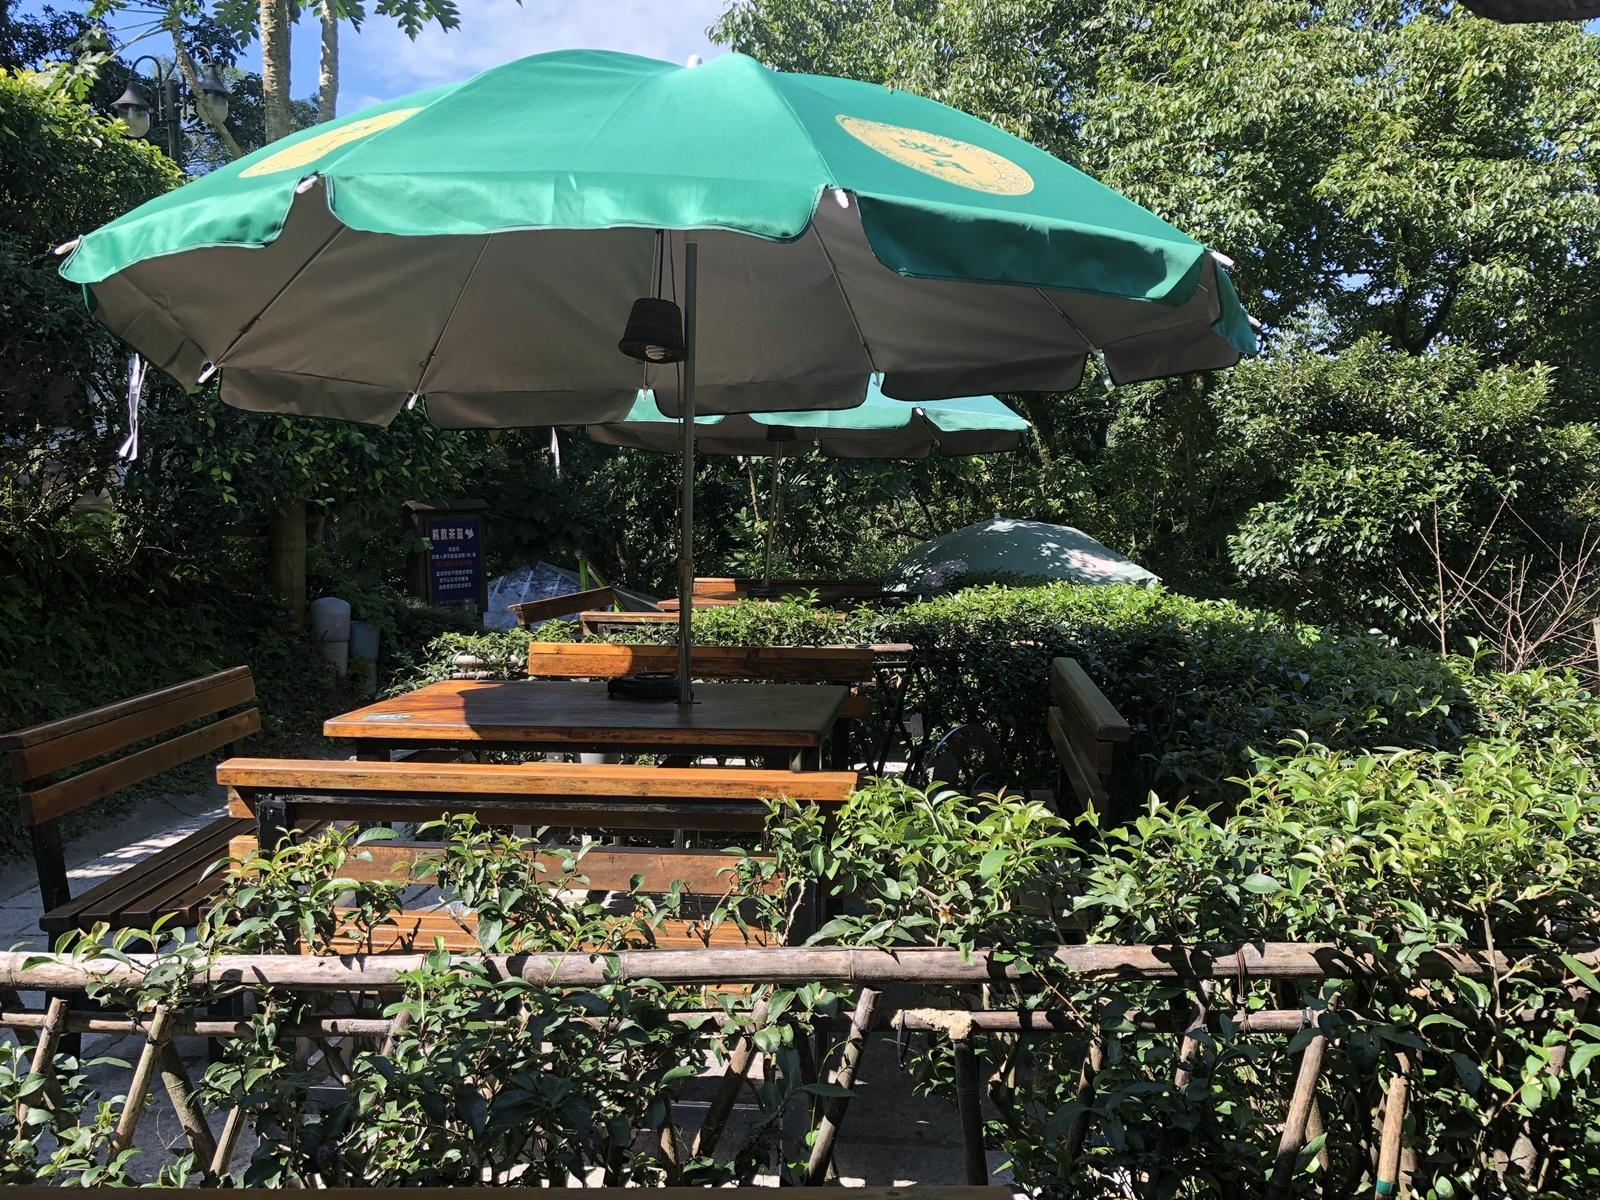 Visitors can appreciate tea culture at a table surrounded by live tea trees outside the tea house. (Image: Billy Shyu / Vision Times)